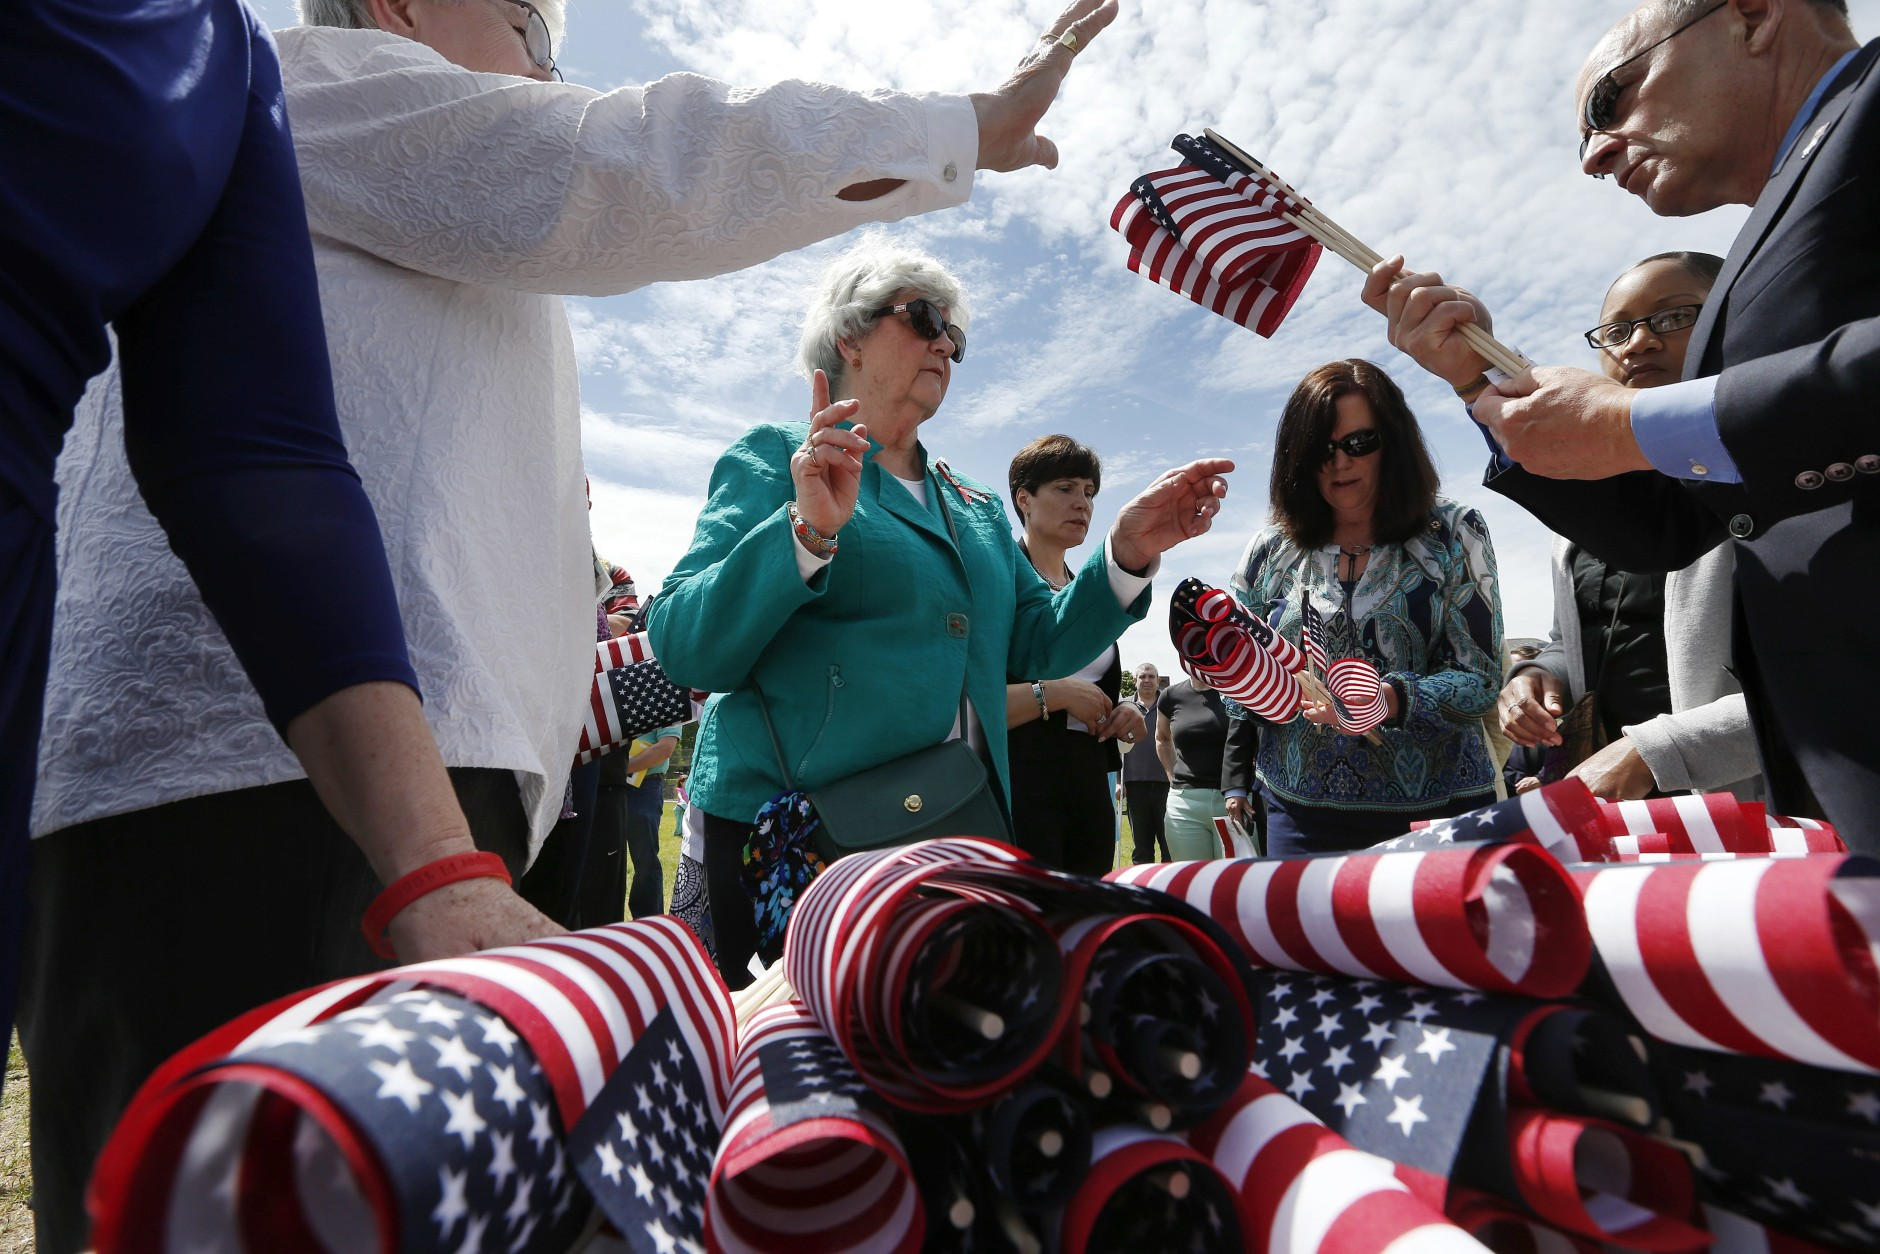 Judy Anderson, center, of North Attleborough, Mass., distributes flags to be placed in the Massachusetts Military Heroes Fund flag garden on Boston Common in Boston, Thursday, May 21 2015. The fund places approximately 37,000 flags on the Common for Memorial Day to represent the Massachusetts military members who died in service from the Revolutionary War to the present. (AP Photo/Michael Dwyer)